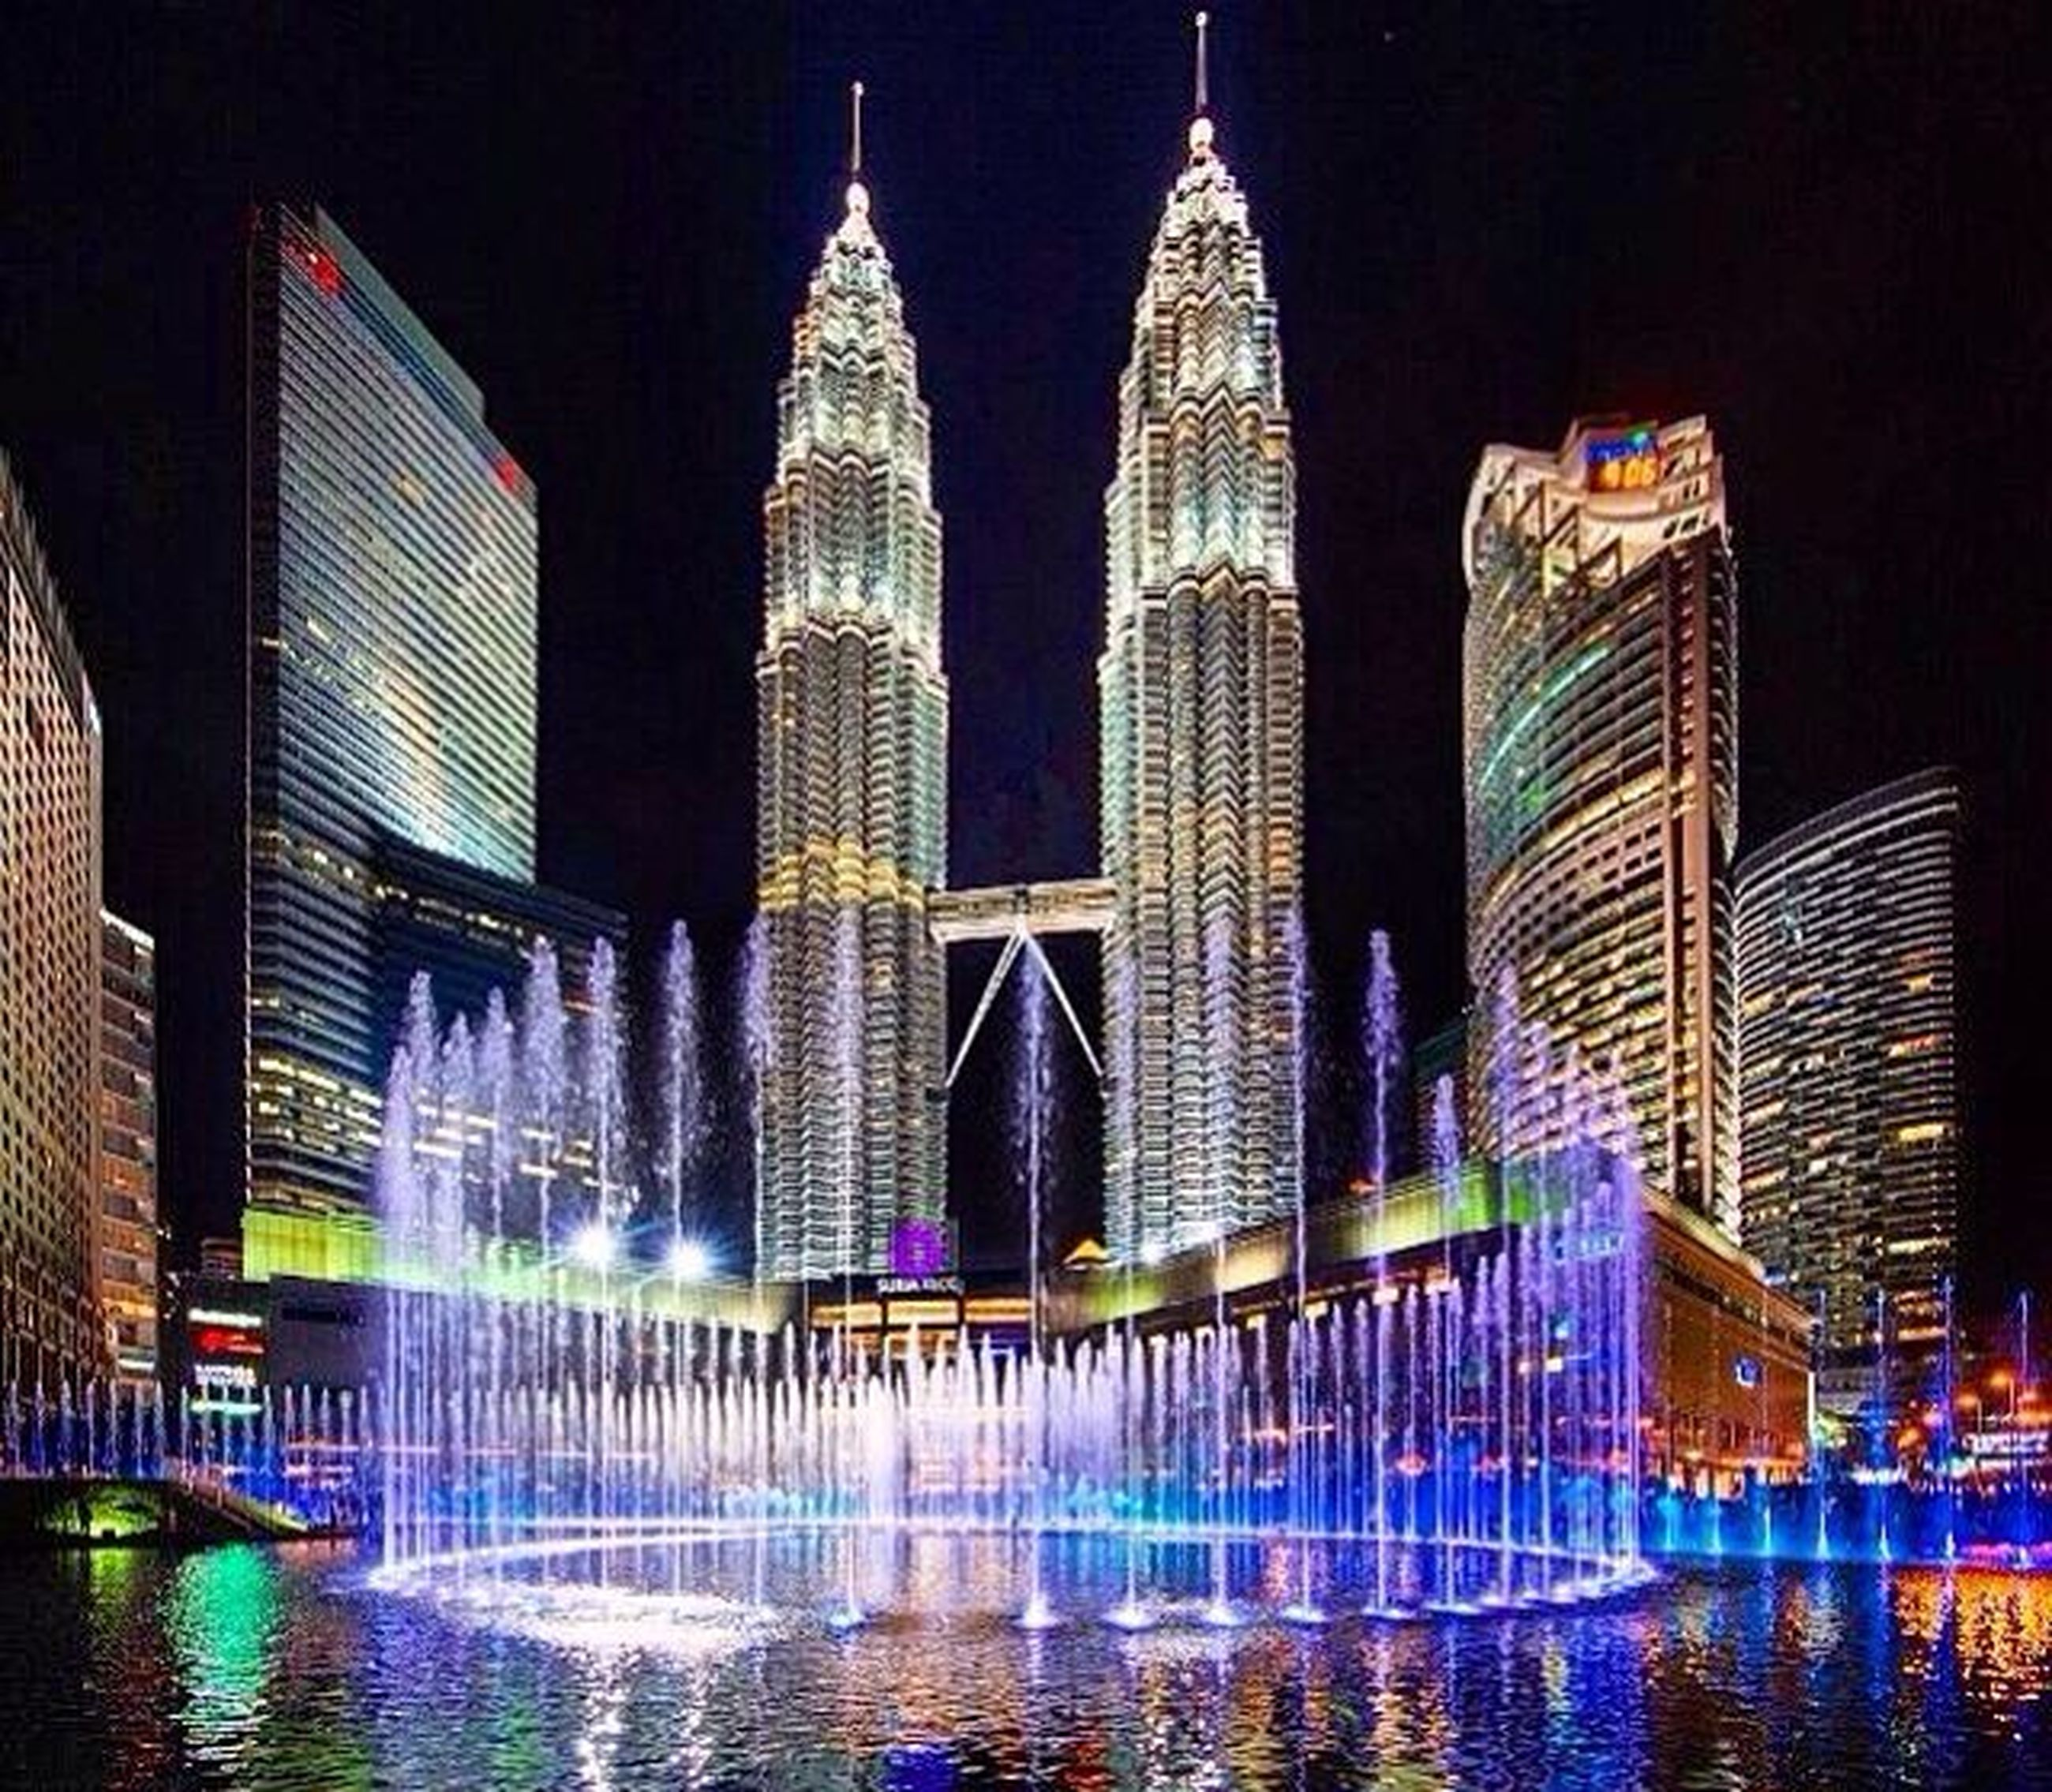 illuminated, skyscraper, water, building exterior, architecture, city, night, built structure, low angle view, modern, tall - high, multi colored, waterfront, travel destinations, tower, cityscape, fountain, tall, dark, tourism, spraying, city life, urban skyline, office building, famous place, outdoors, sky, capital cities